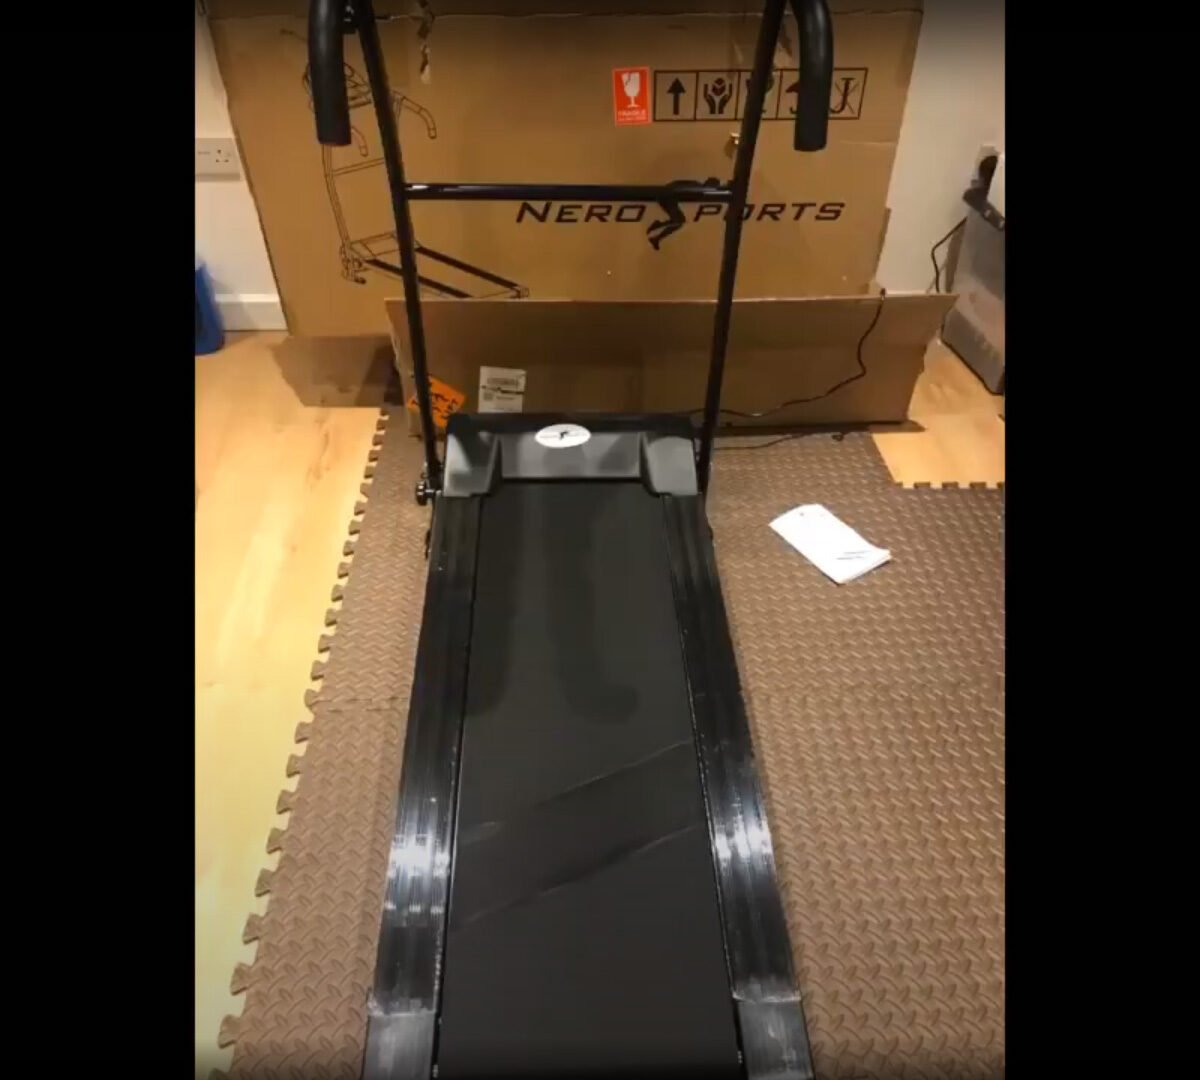 Nero Sports Motorized Treadmill in home gym with floor mats